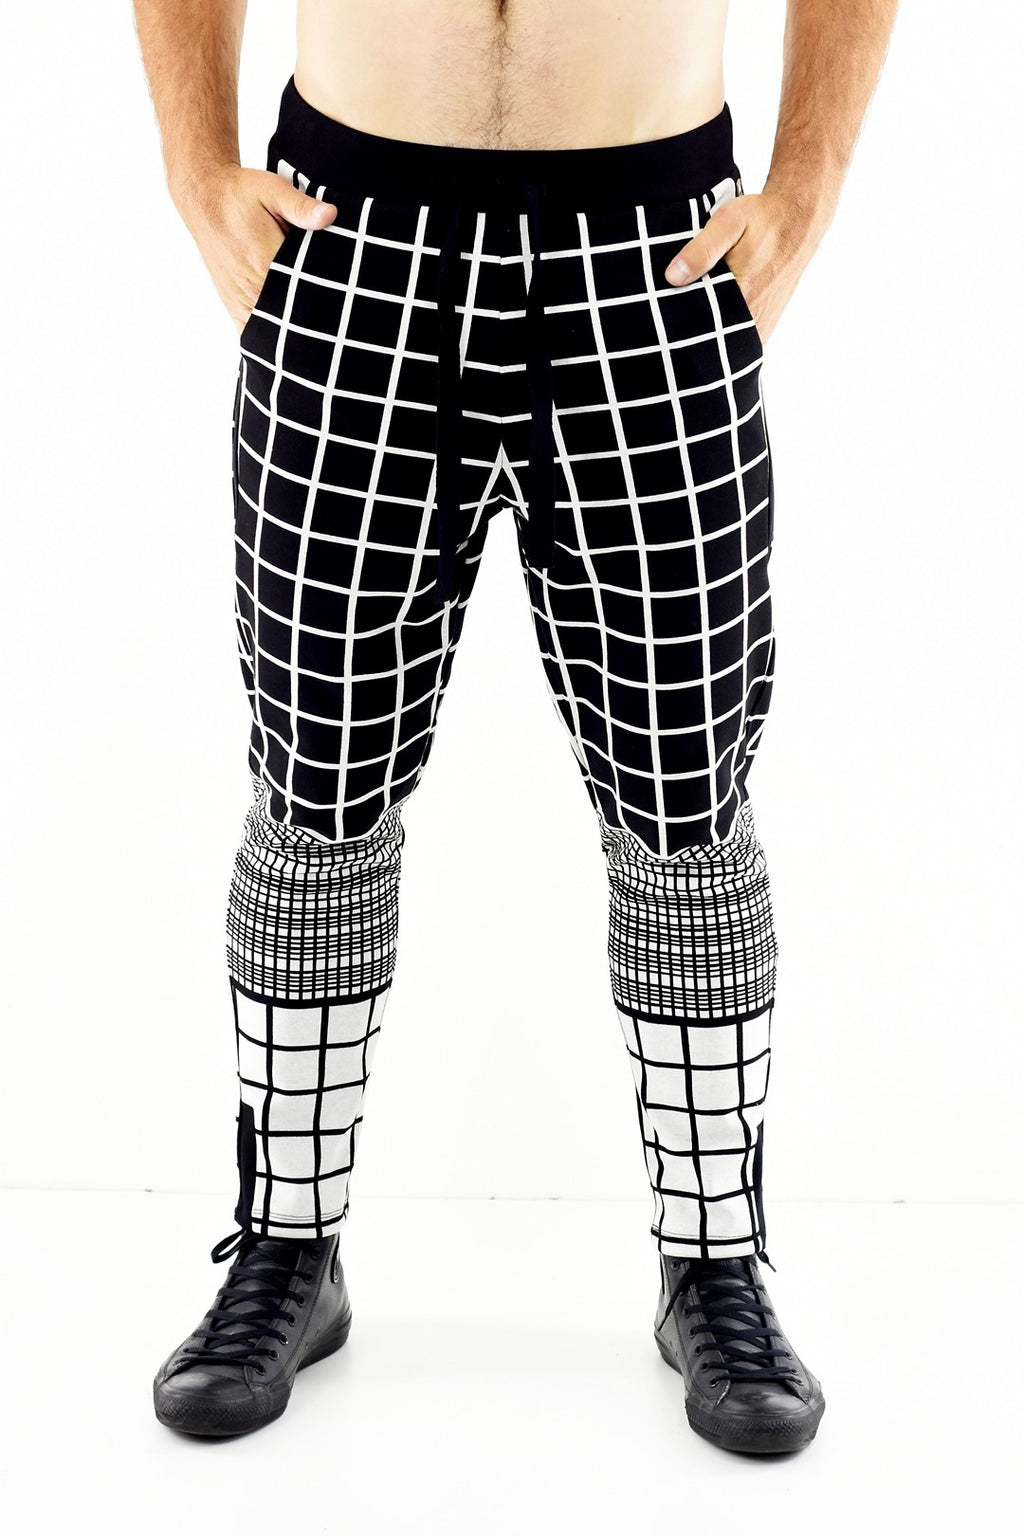 Mens Black and White check pull on pants ZG5317